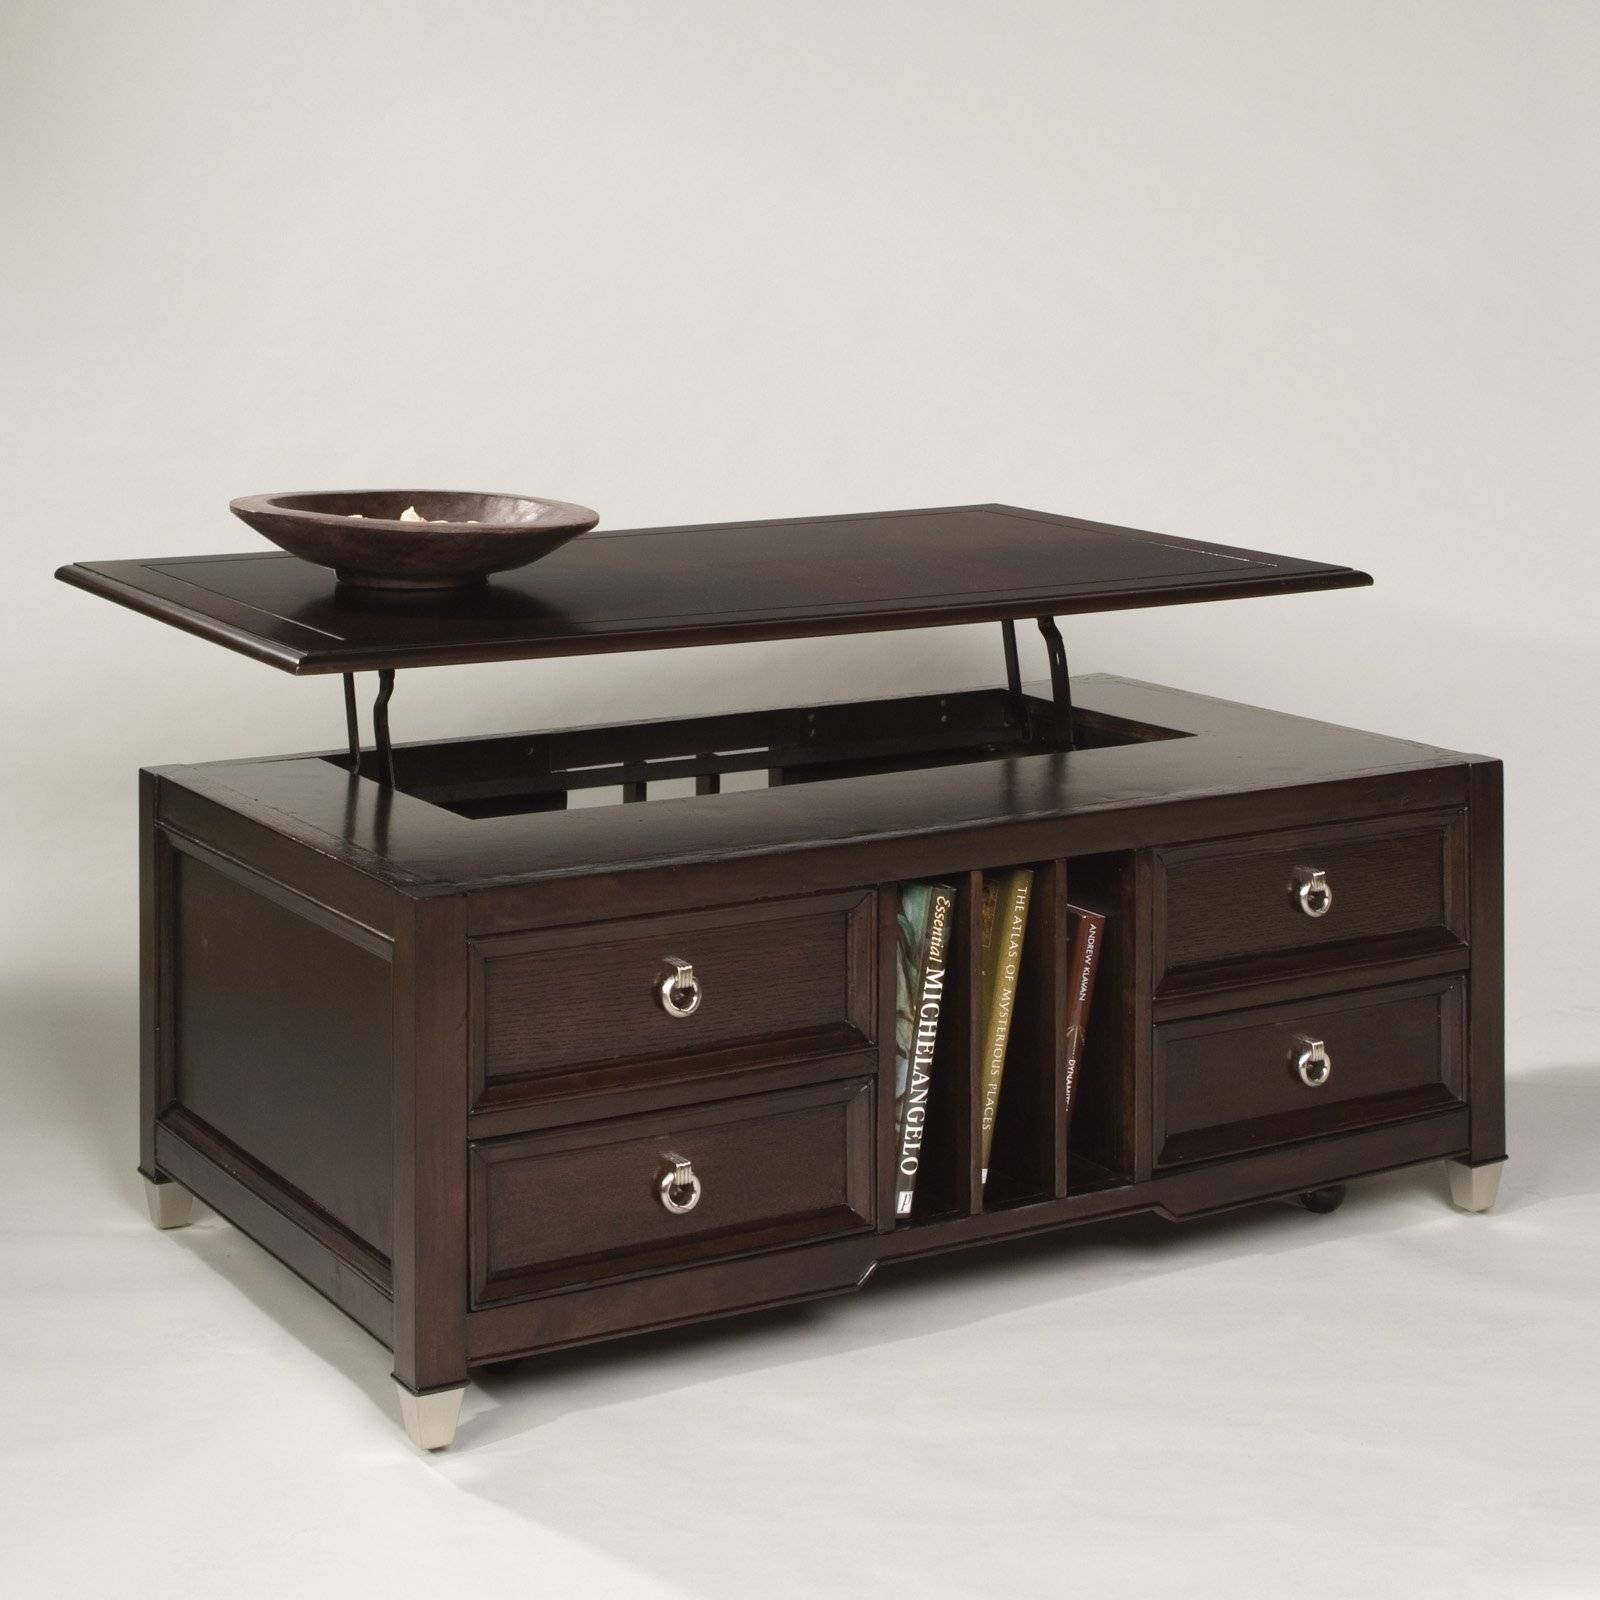 30 Best Collection of Coffee Tables With Lift Top Storage